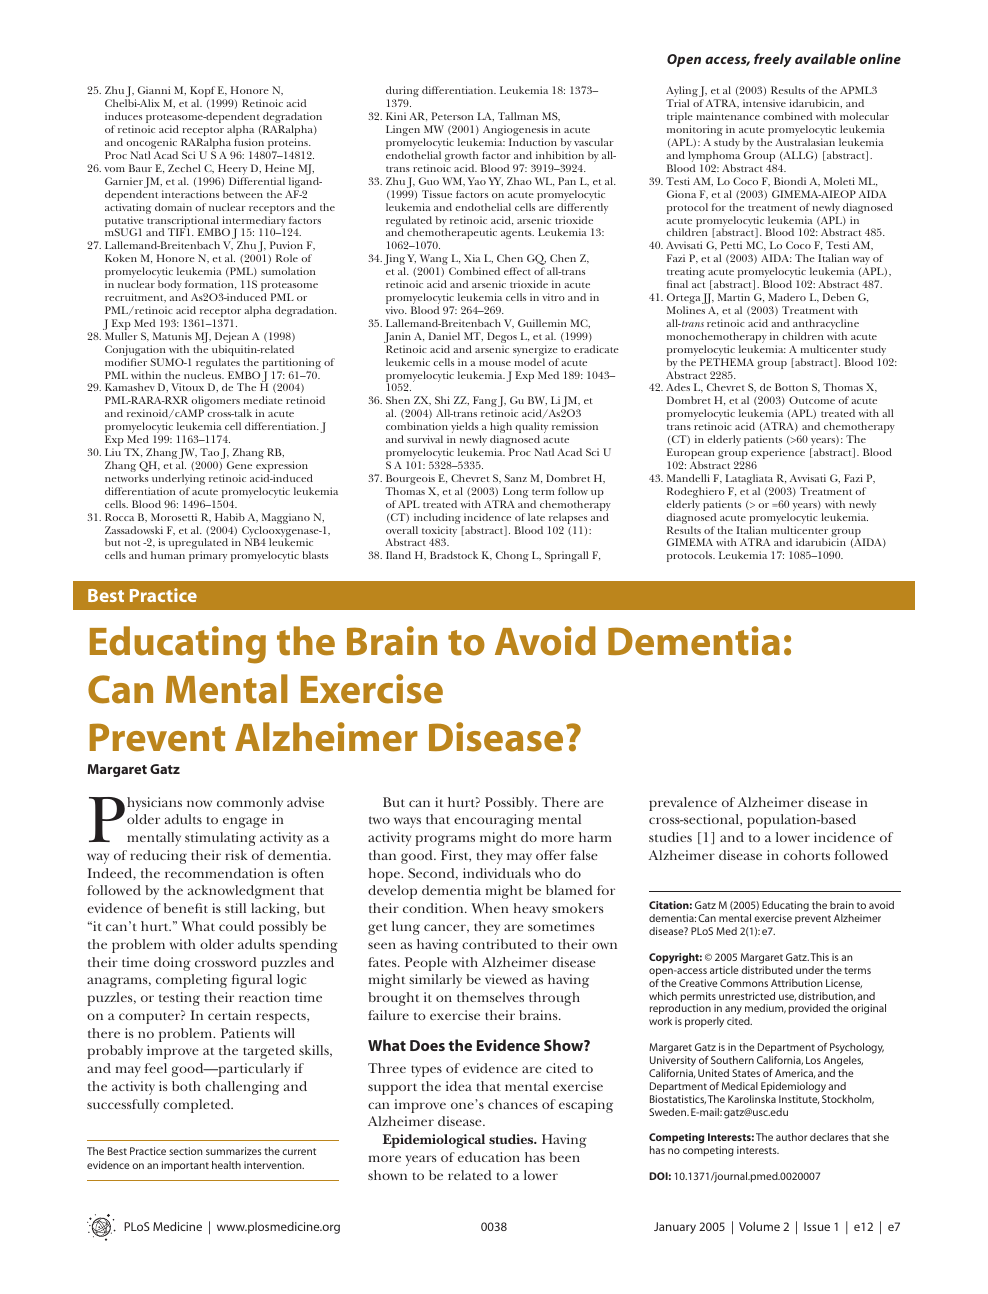 004 Research Paper Alzheimers Disease Stunning Questions Alzheimer's Topics Ideas Topic Full